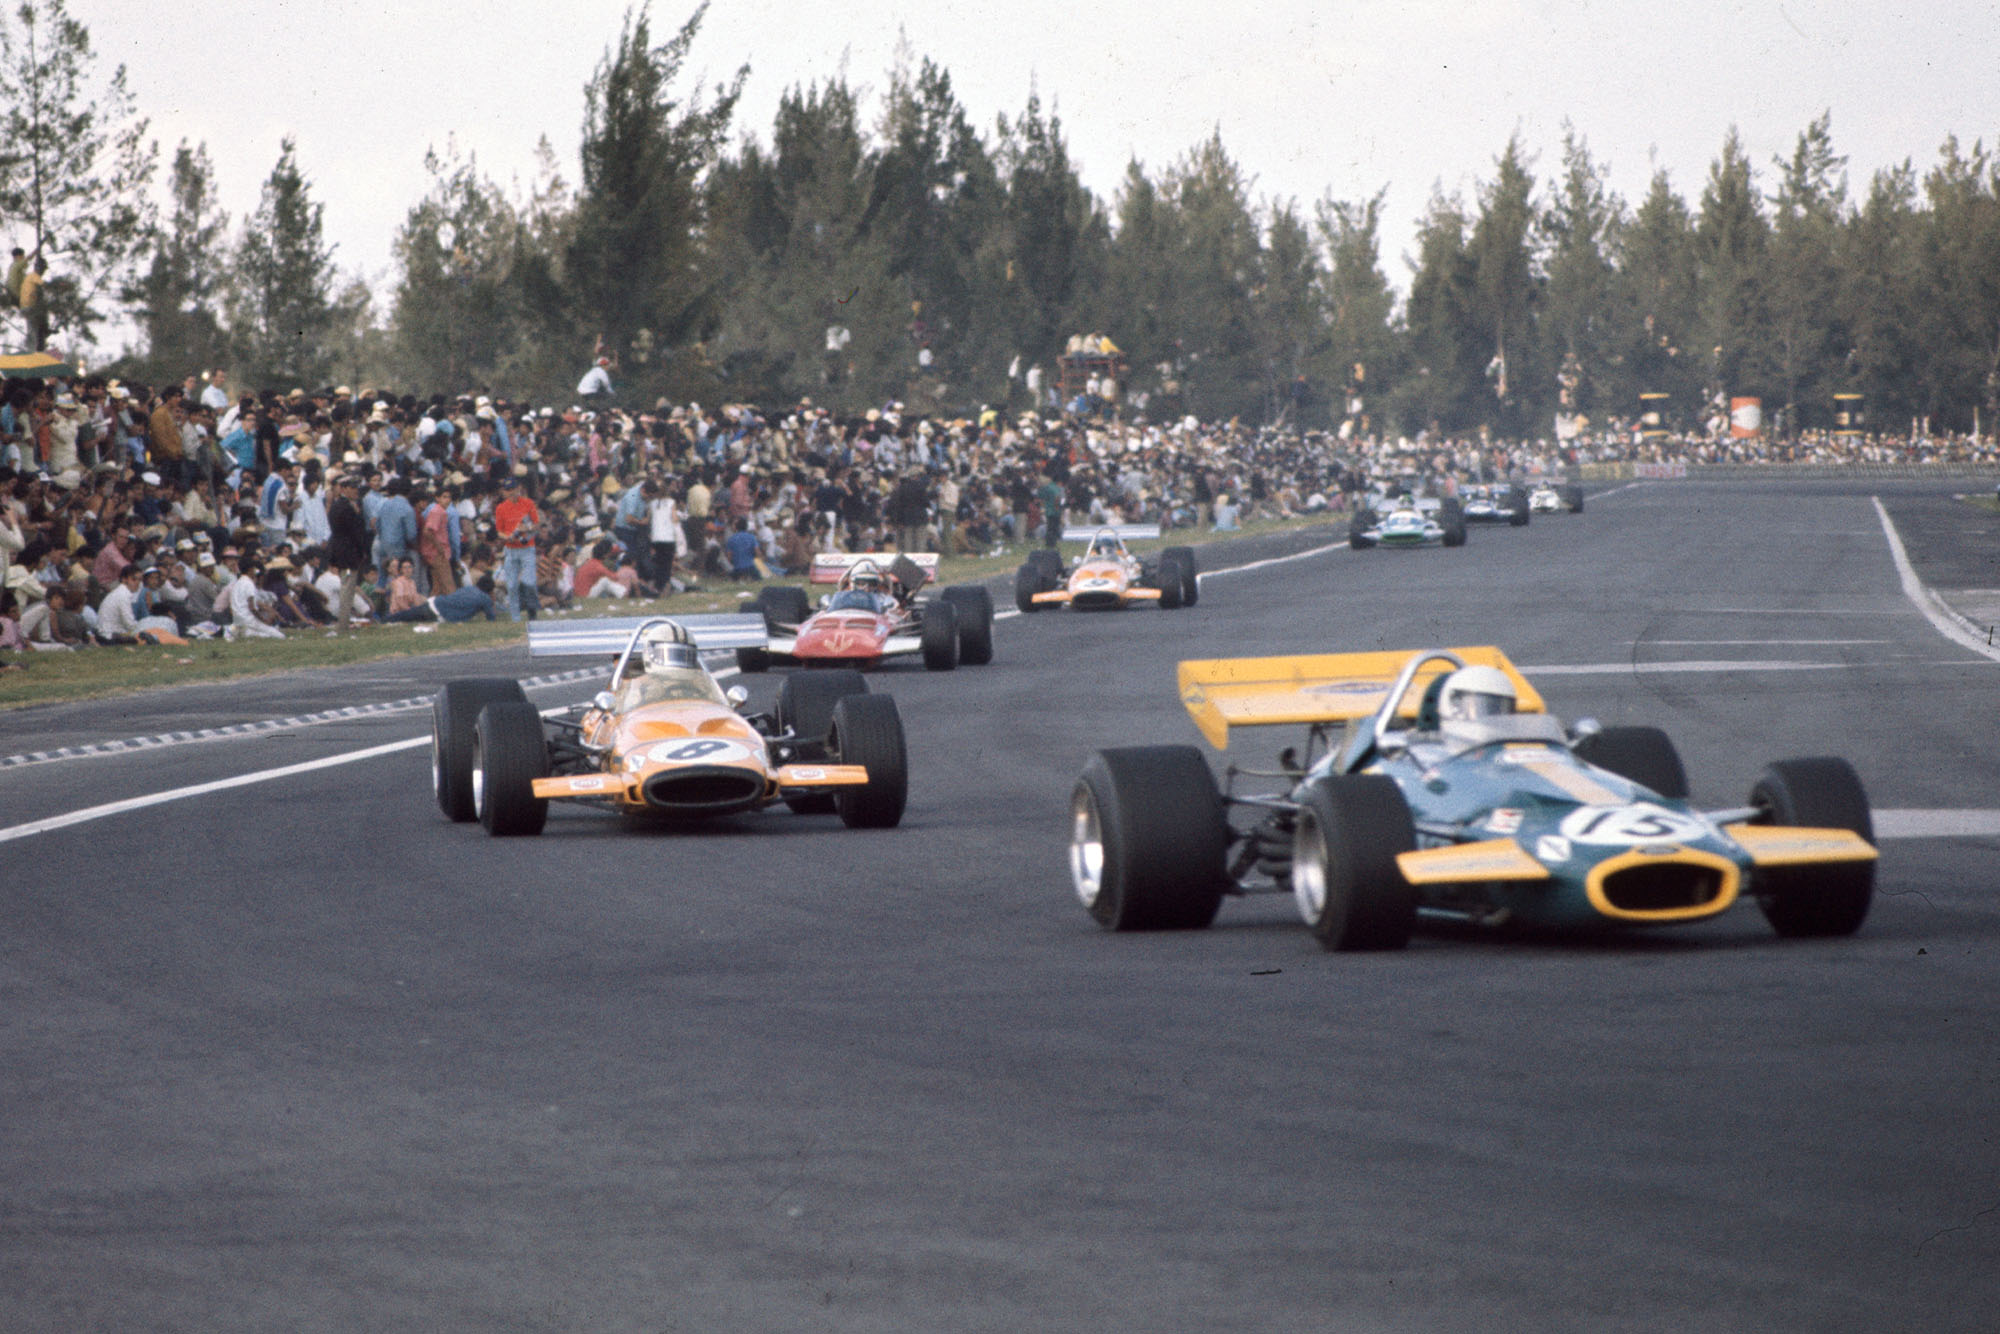 Large crowds gather dangerously near to the track as the race continues at the 1970 Mexican Grand Prix.